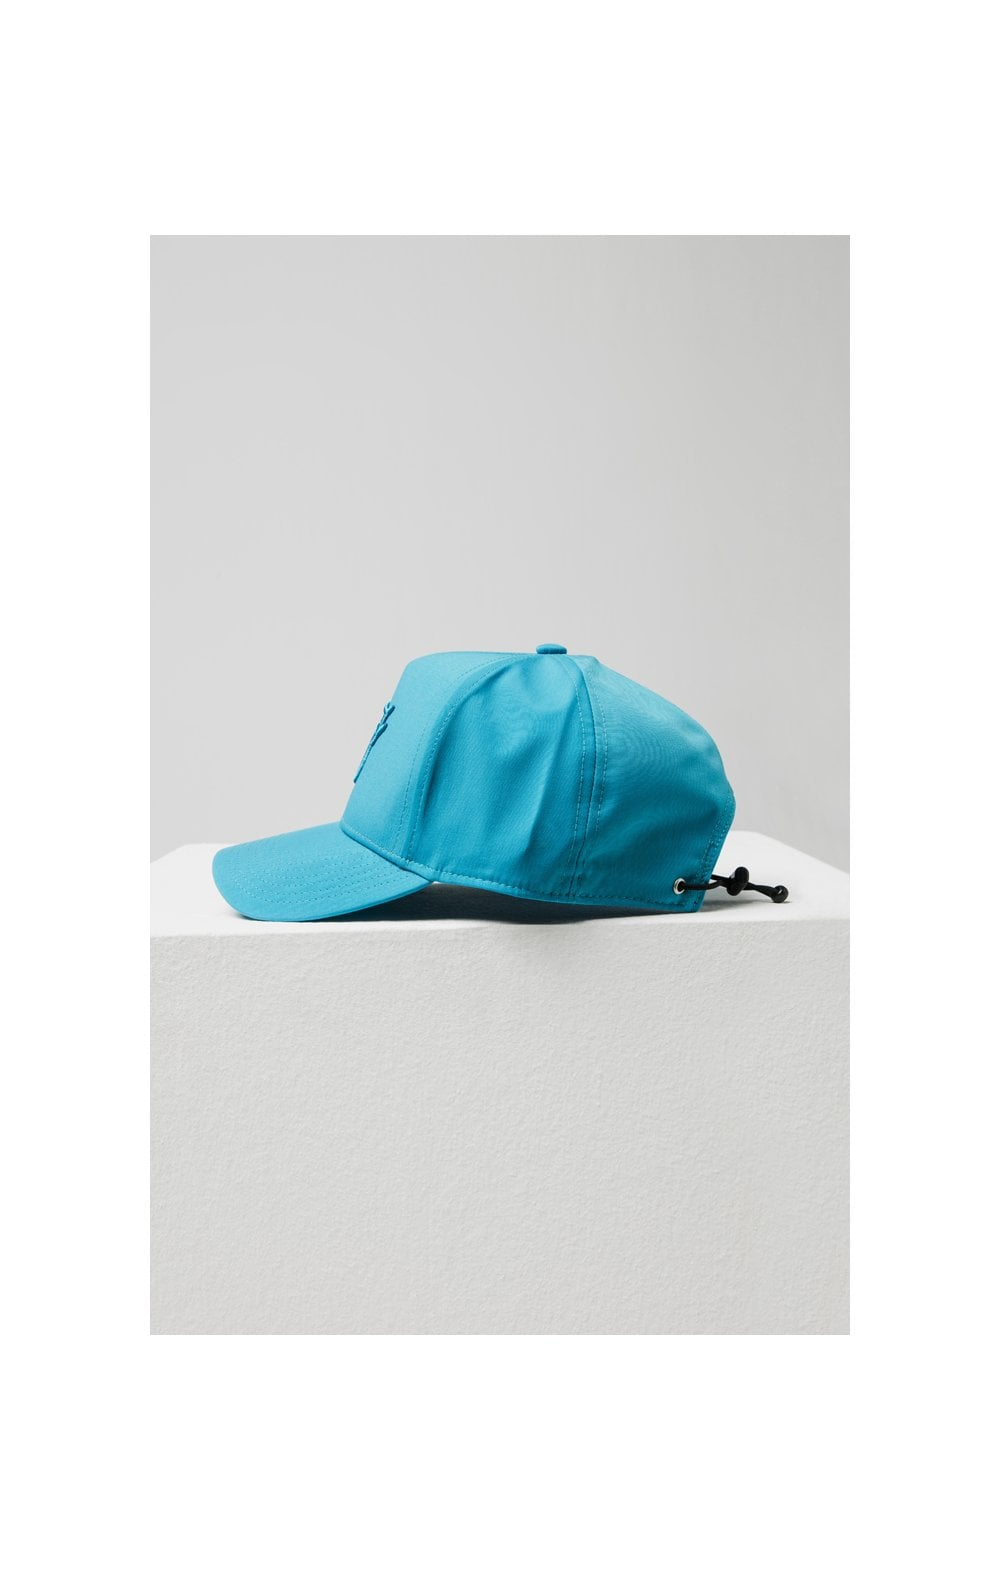 SikSilk Crushed Nylon Full Trucker - Teal (4)